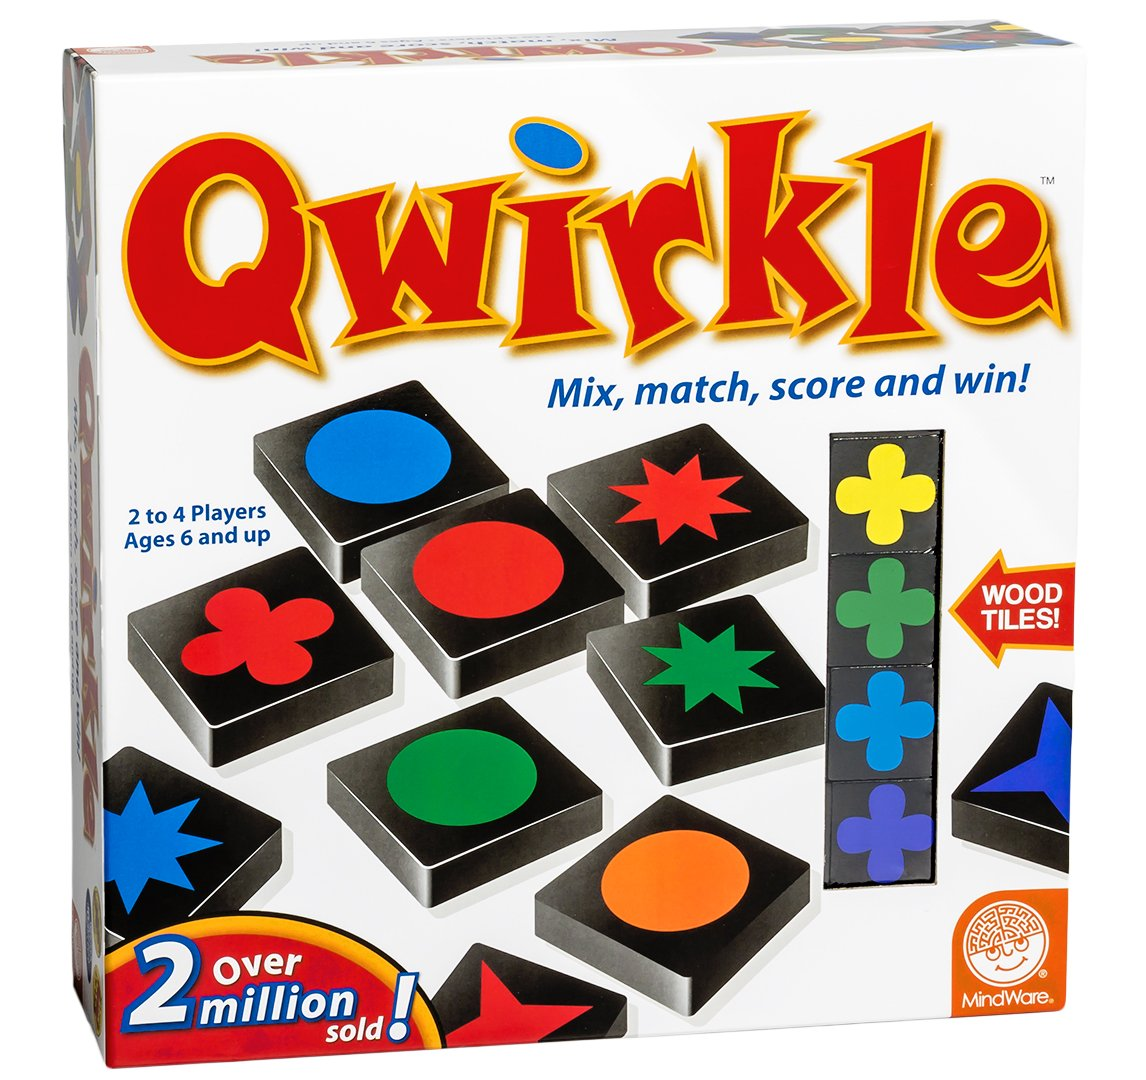 Amazon.com: MindWare Qwirkle Board Game: Mindware: Toys & Games